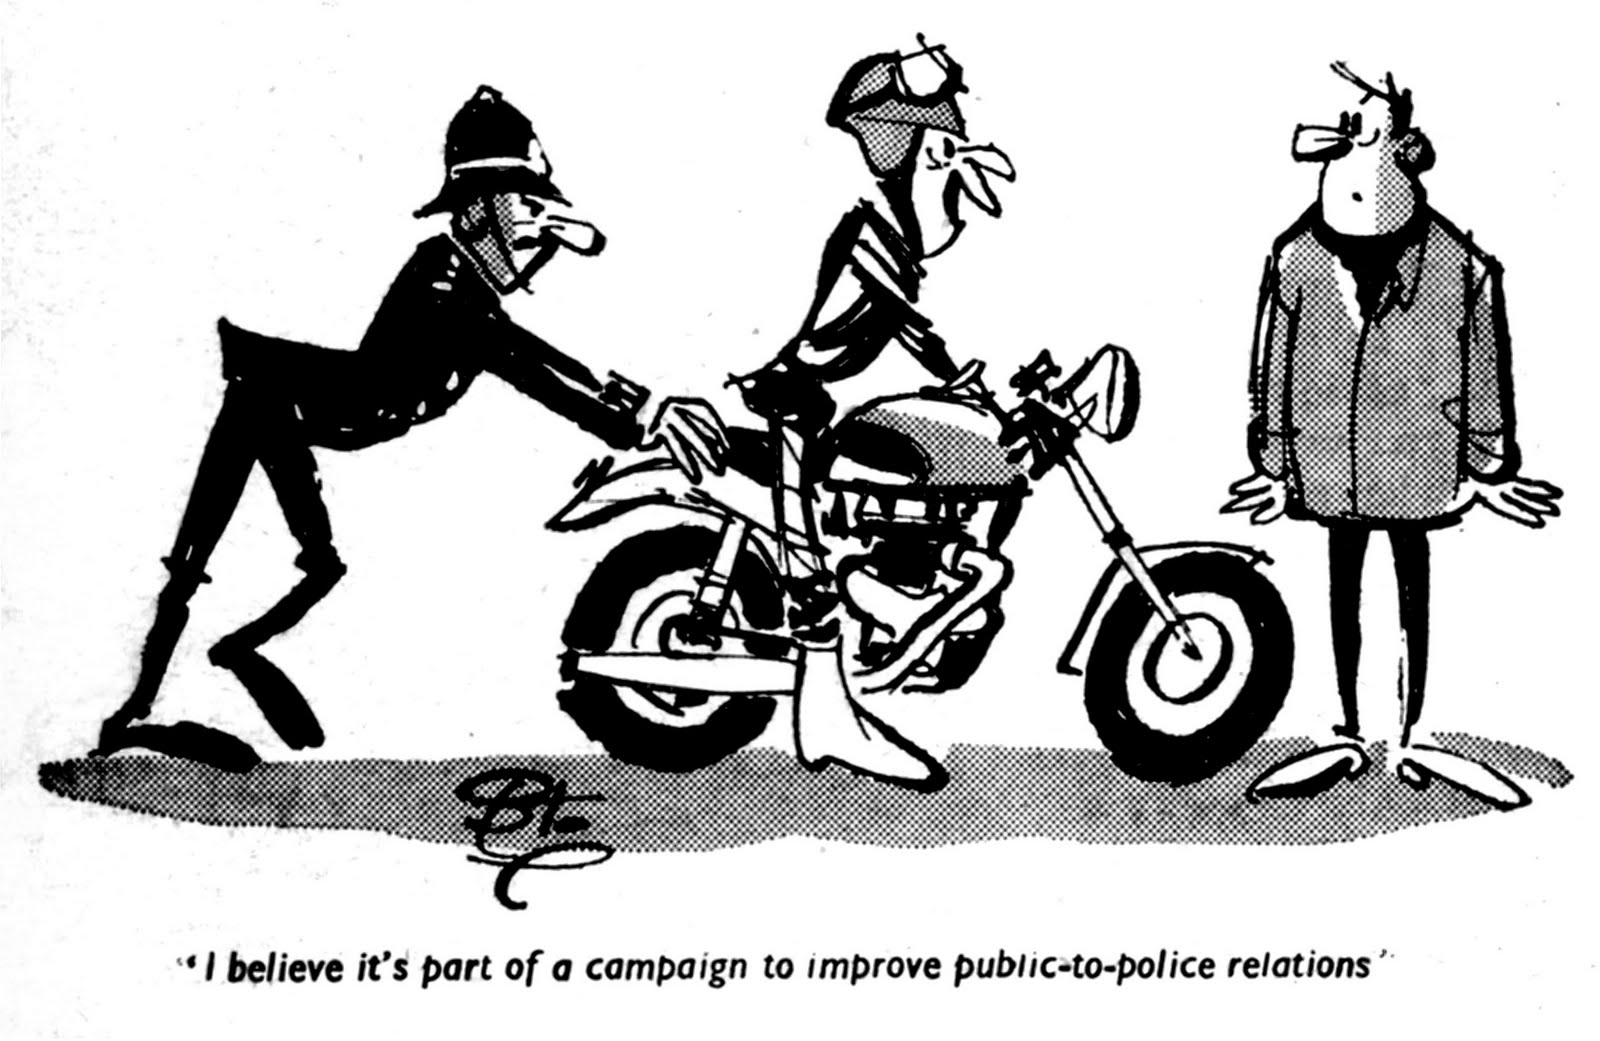 1600x1041 The Velobanjogent Cartoons .time For Some More Humour